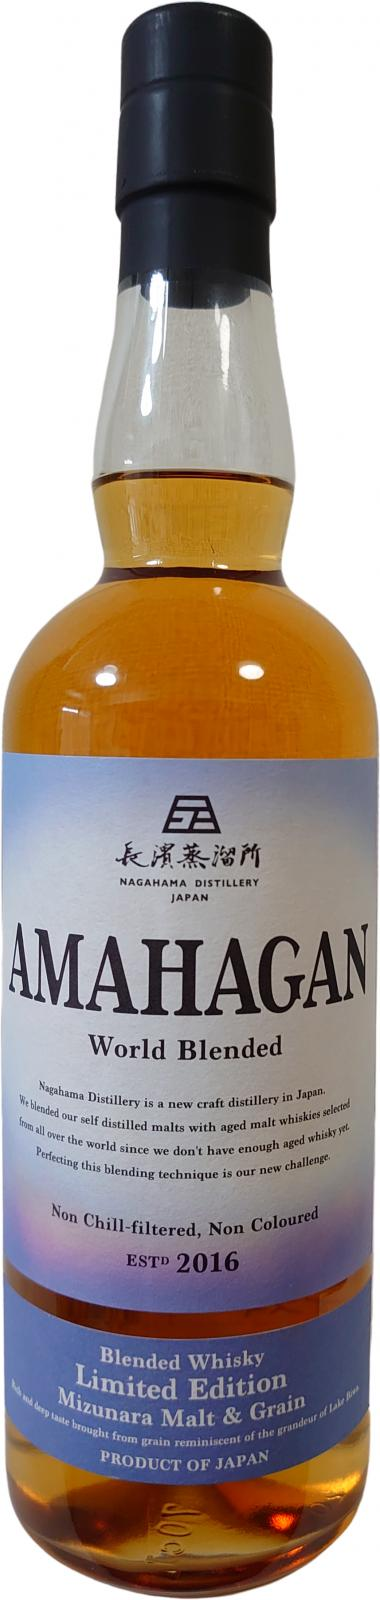 Amahagan World Blended